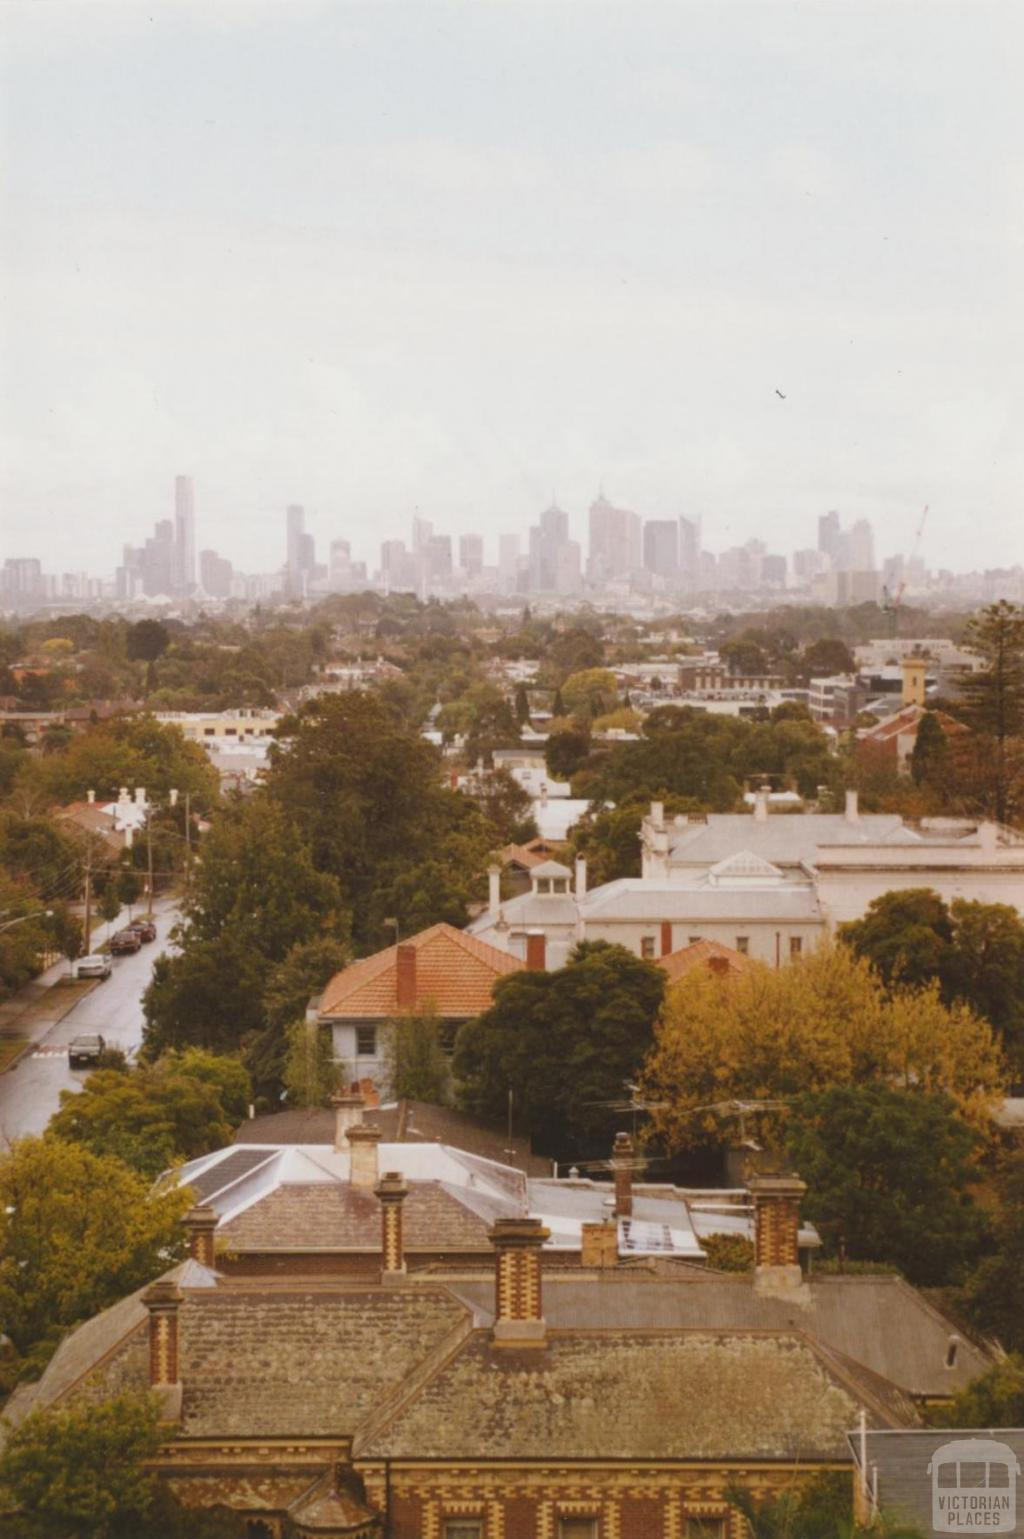 Looking west from Oxley Road Uniting Church, Auburn, 2007